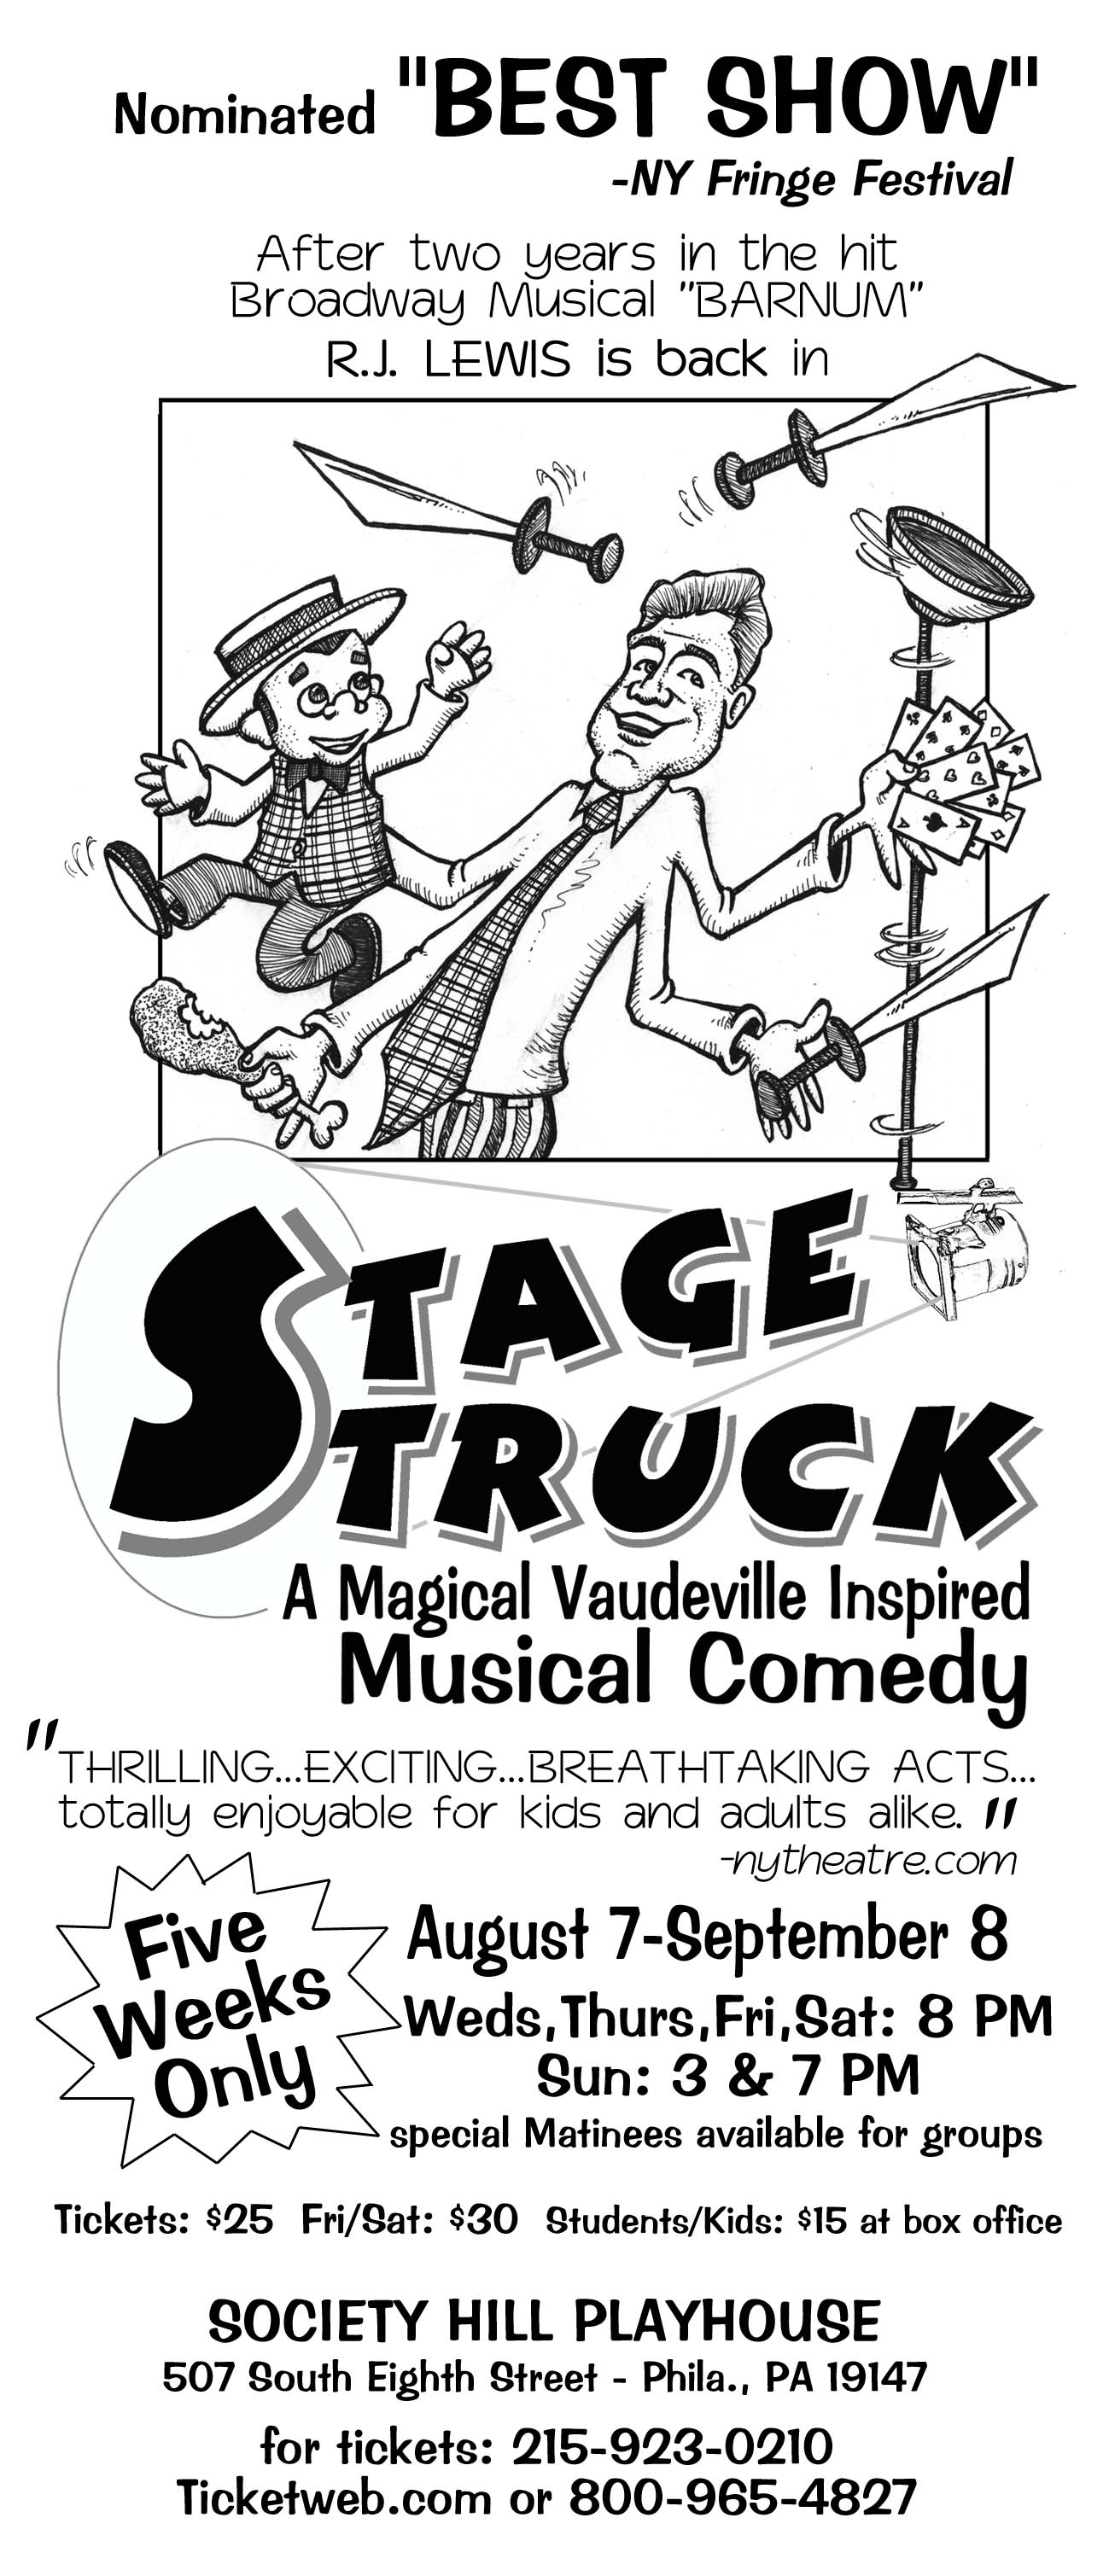 Stage Struck Flyer.jpg